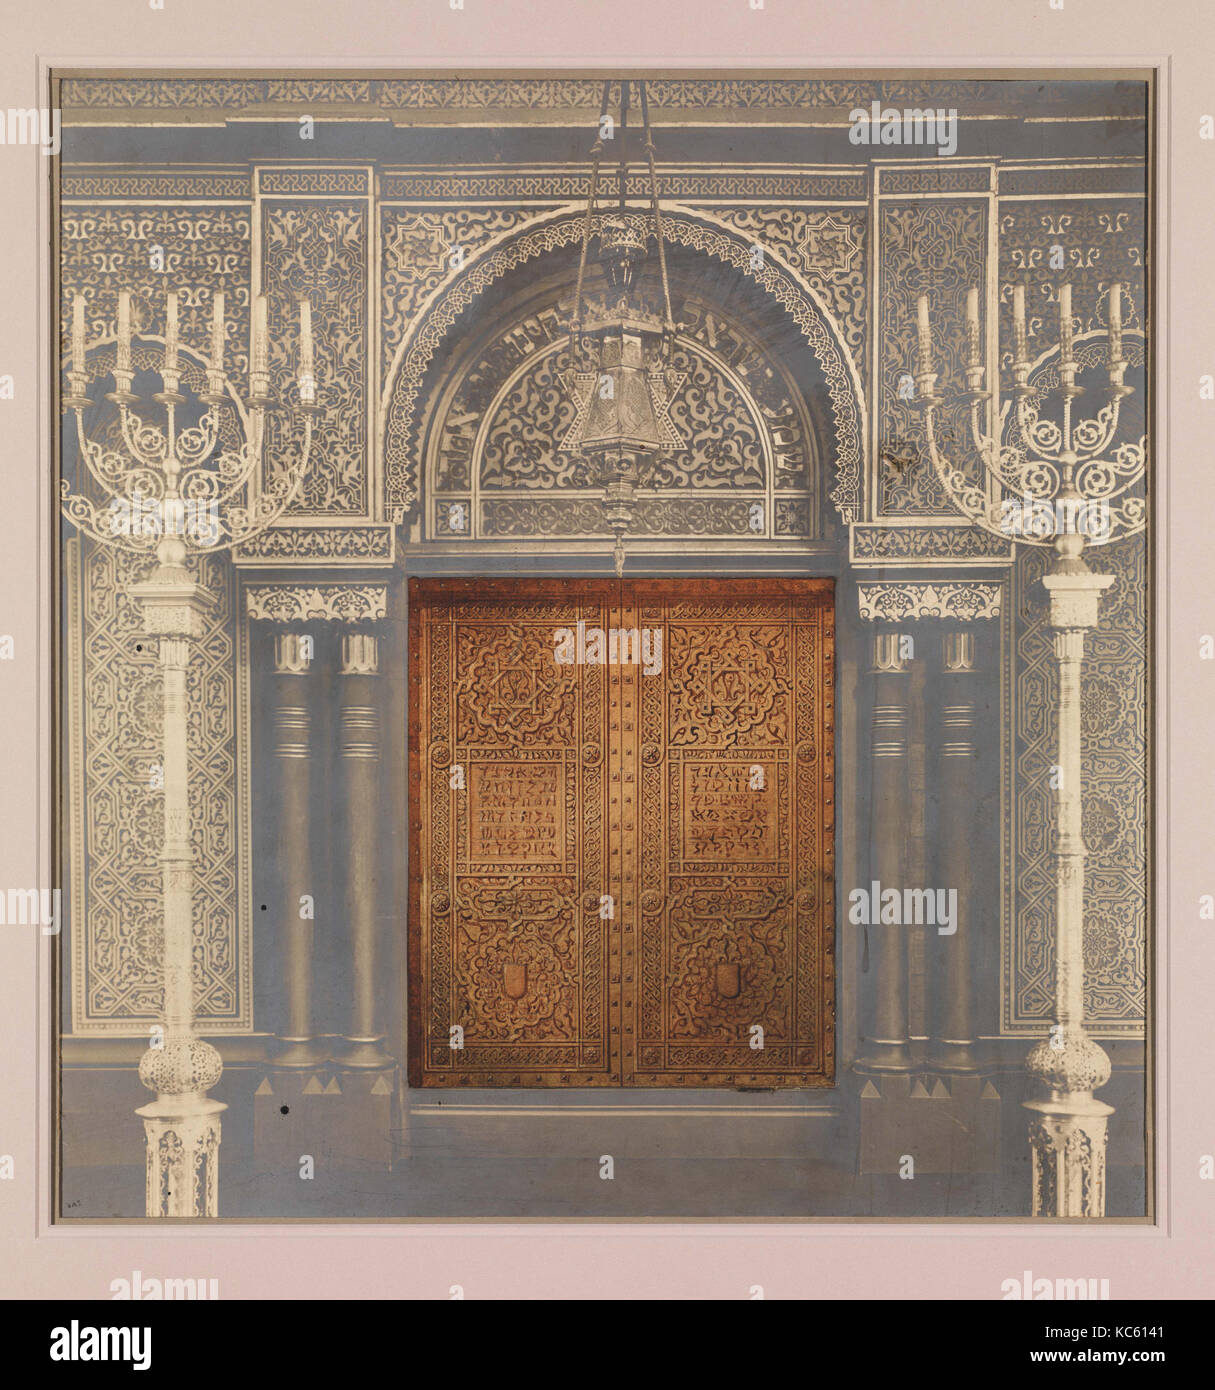 Design for Ark Doors Temple Emanu-El New York Tiffany Studios 1910 & Design for Ark Doors Temple Emanu-El New York Tiffany Studios ...